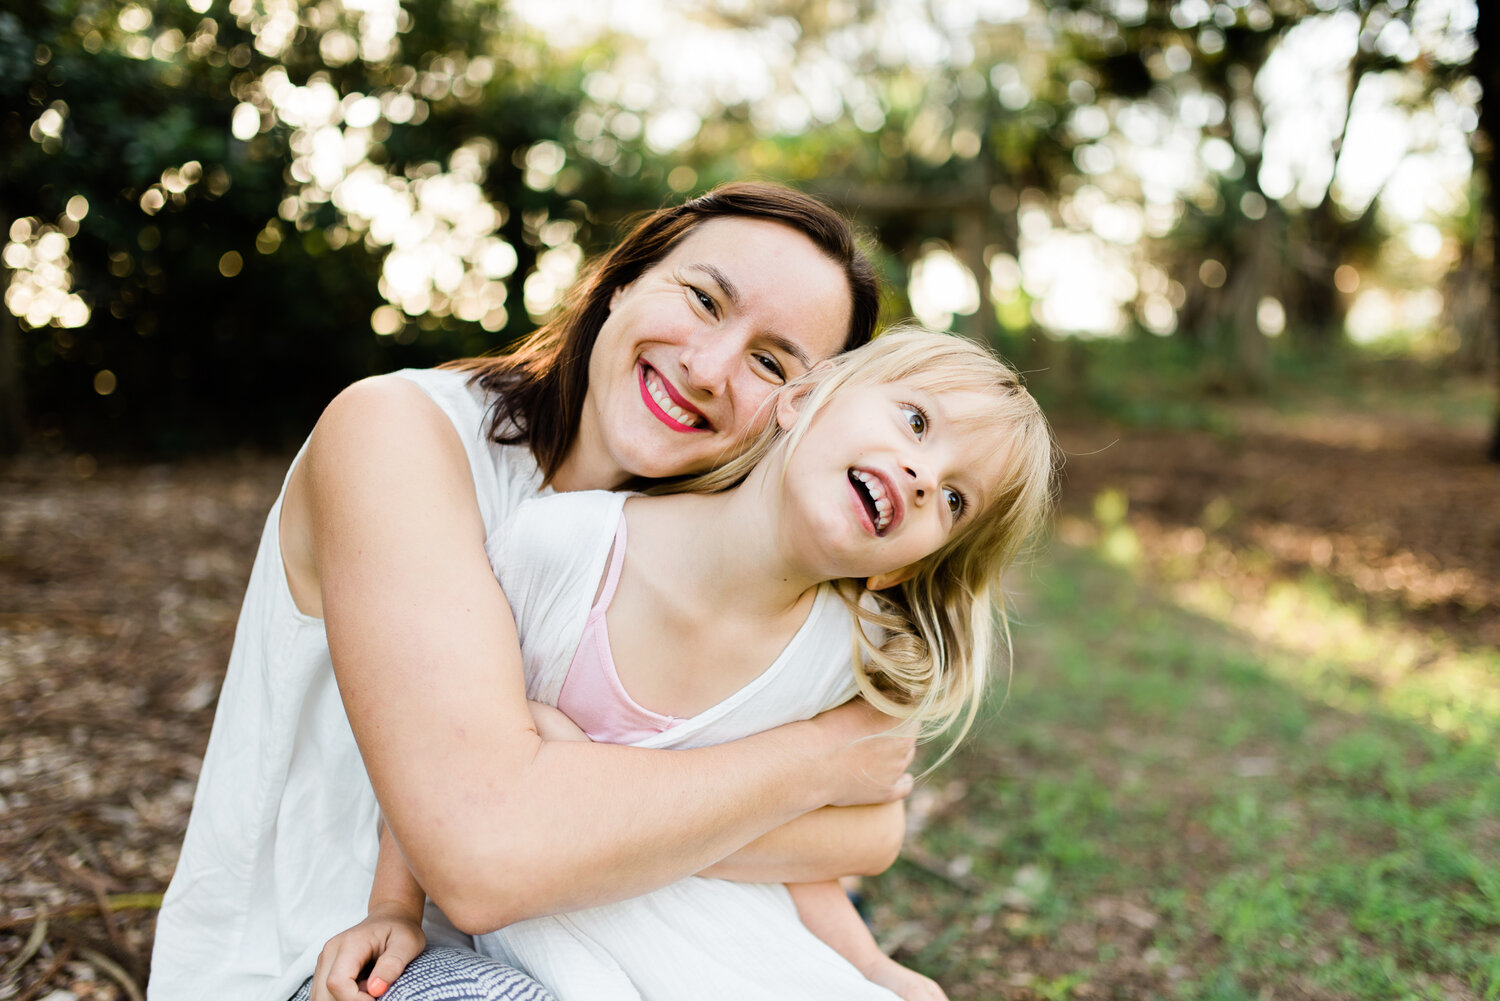 Janelle and her mini me having a wriggly hug during their family session at the beach in Caloundra on the Sunshine Coast.